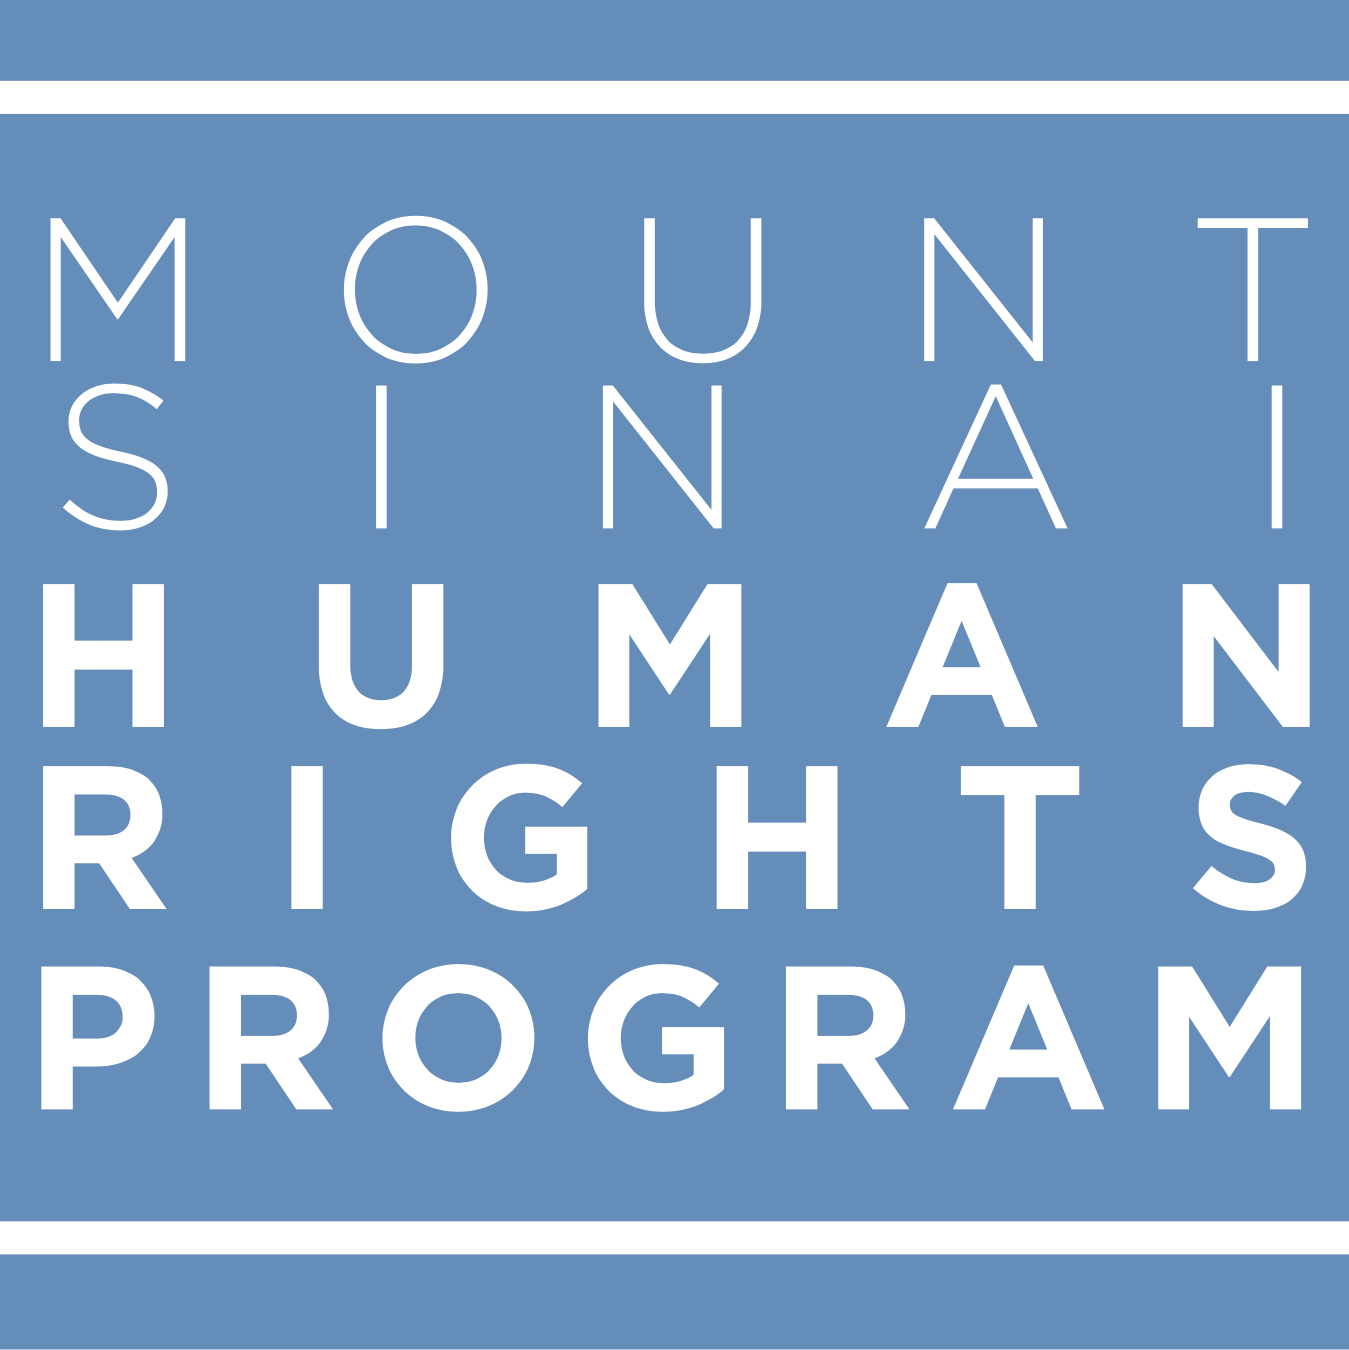 The Mount Sinai Human Rights Program